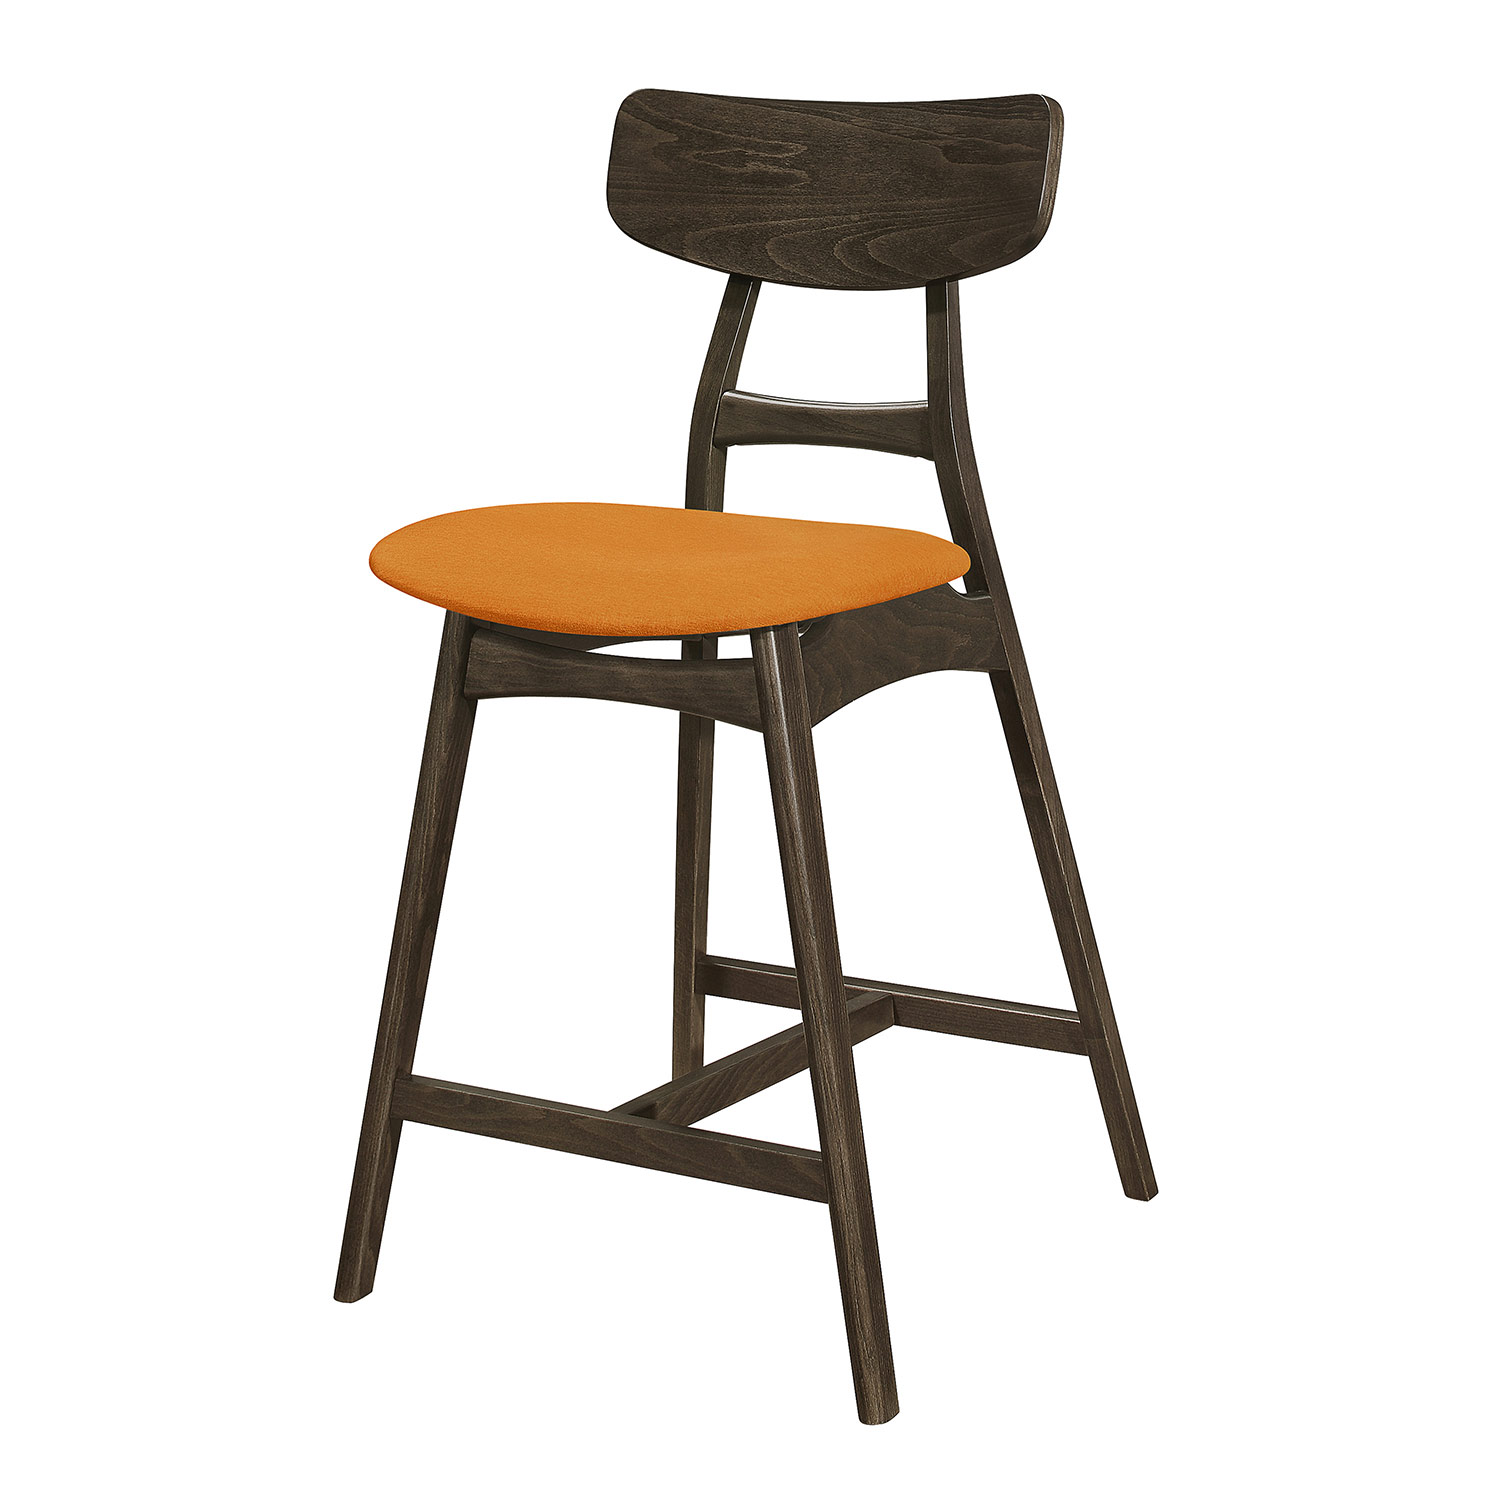 Homelegance Tannar Counter Height Chair - Orange